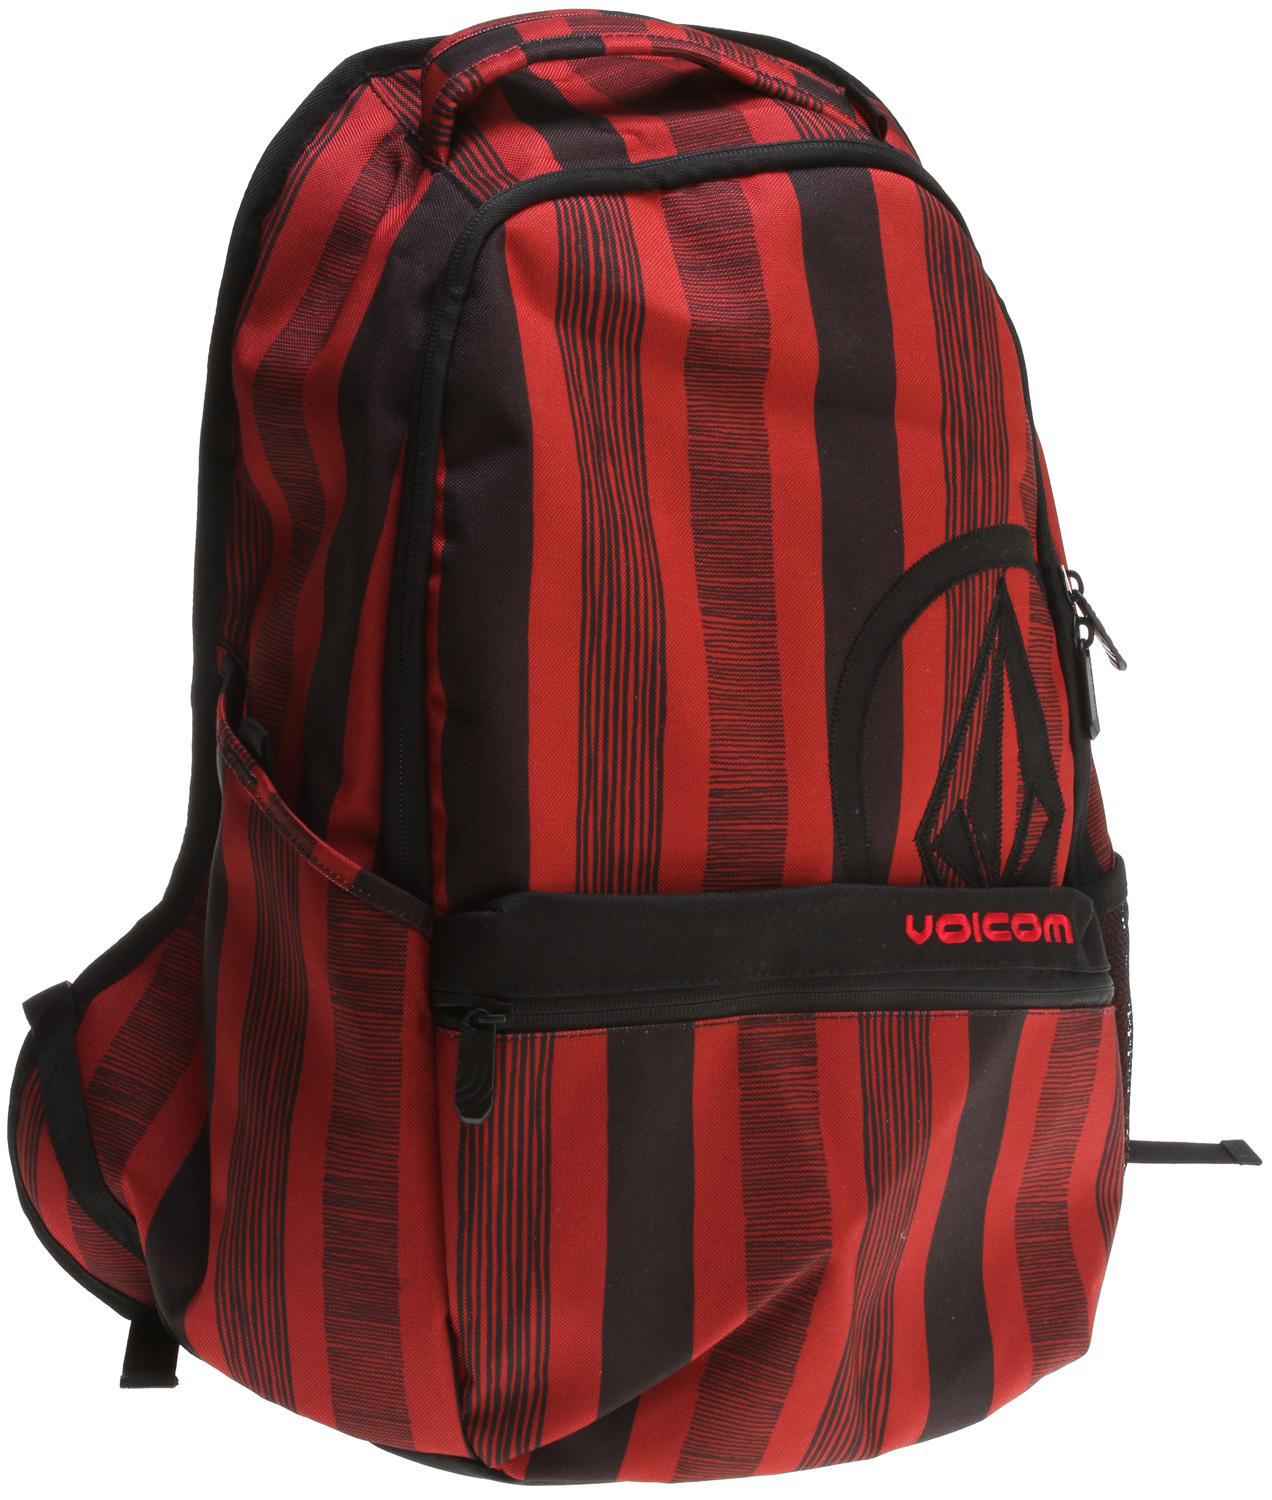 "Surf Key Features of the Volcom Equator Backpack: Volume: 31L Dimensions: 12 x 7 x 19"" Weight: 1lb Two compartment backpack with 'Circle Stone' applique and 'Volcom' embroidery As part of Volcom's V.Co-logical effort, a portion of the proceeds from the sale of this style will be donated to charities affiliated with 1% for the Planet - $28.95"